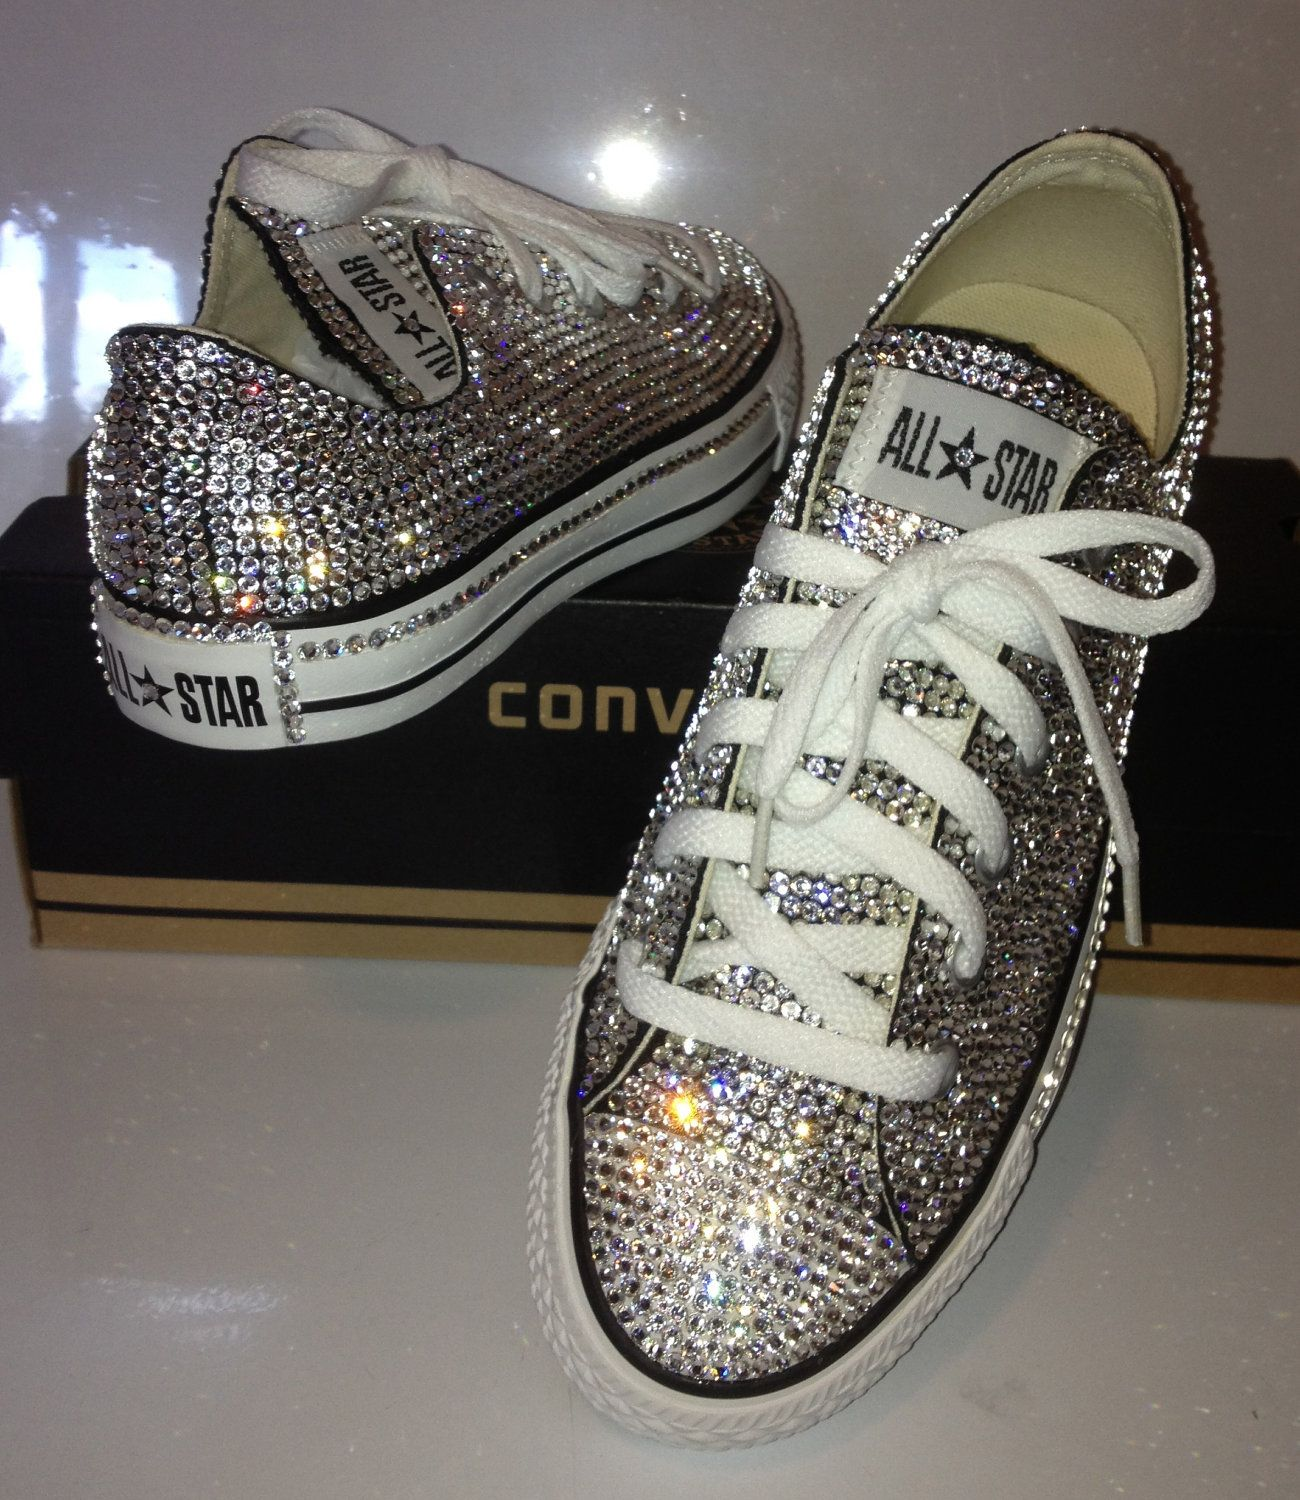 7a36f072d3e096 Blinged Out Swarovski Crystal Converse All Star.  700.00